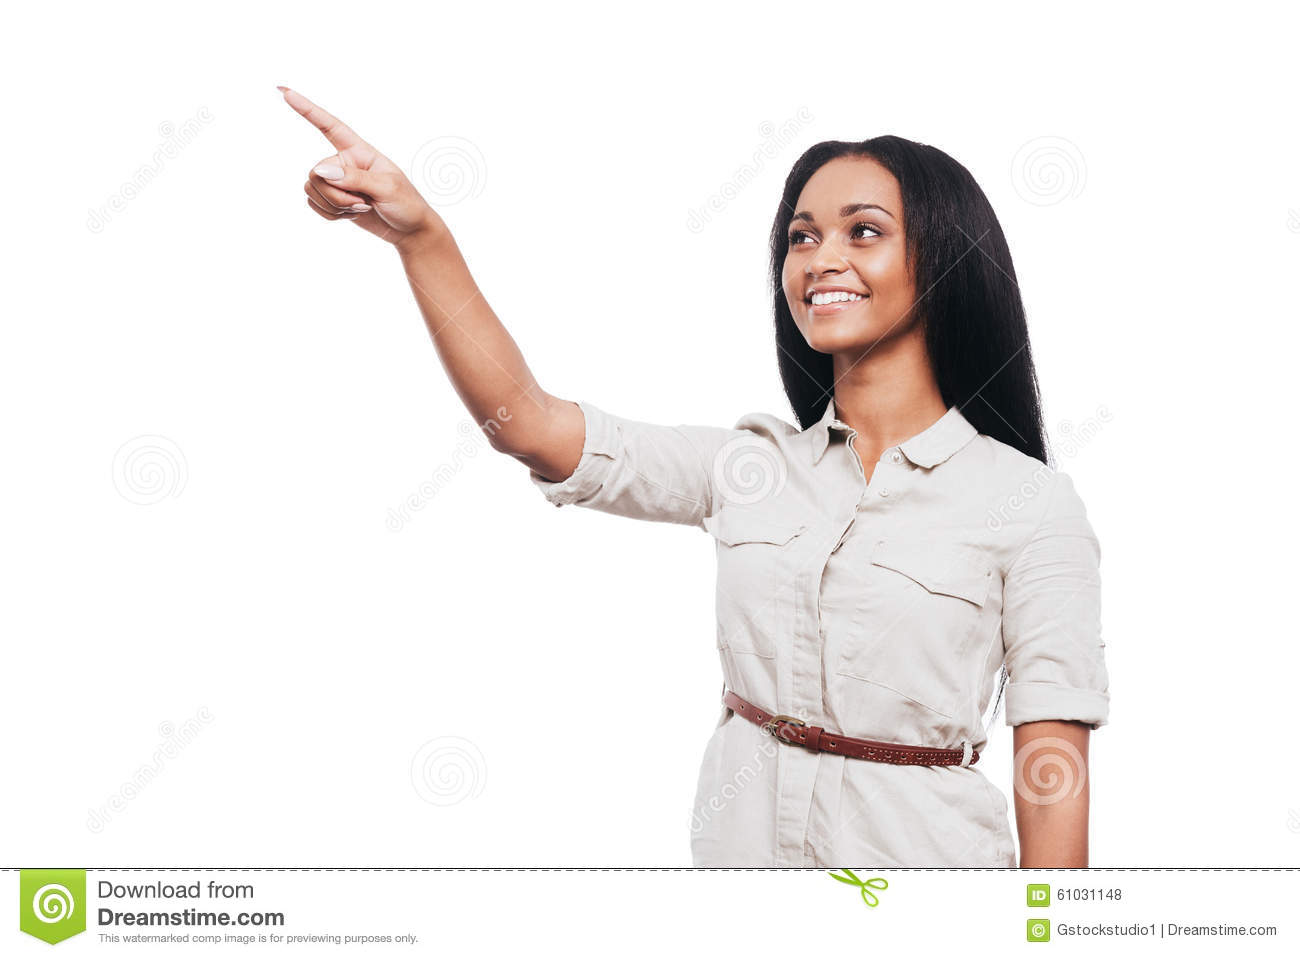 Look At That! Stock Photo - Image: 61031148